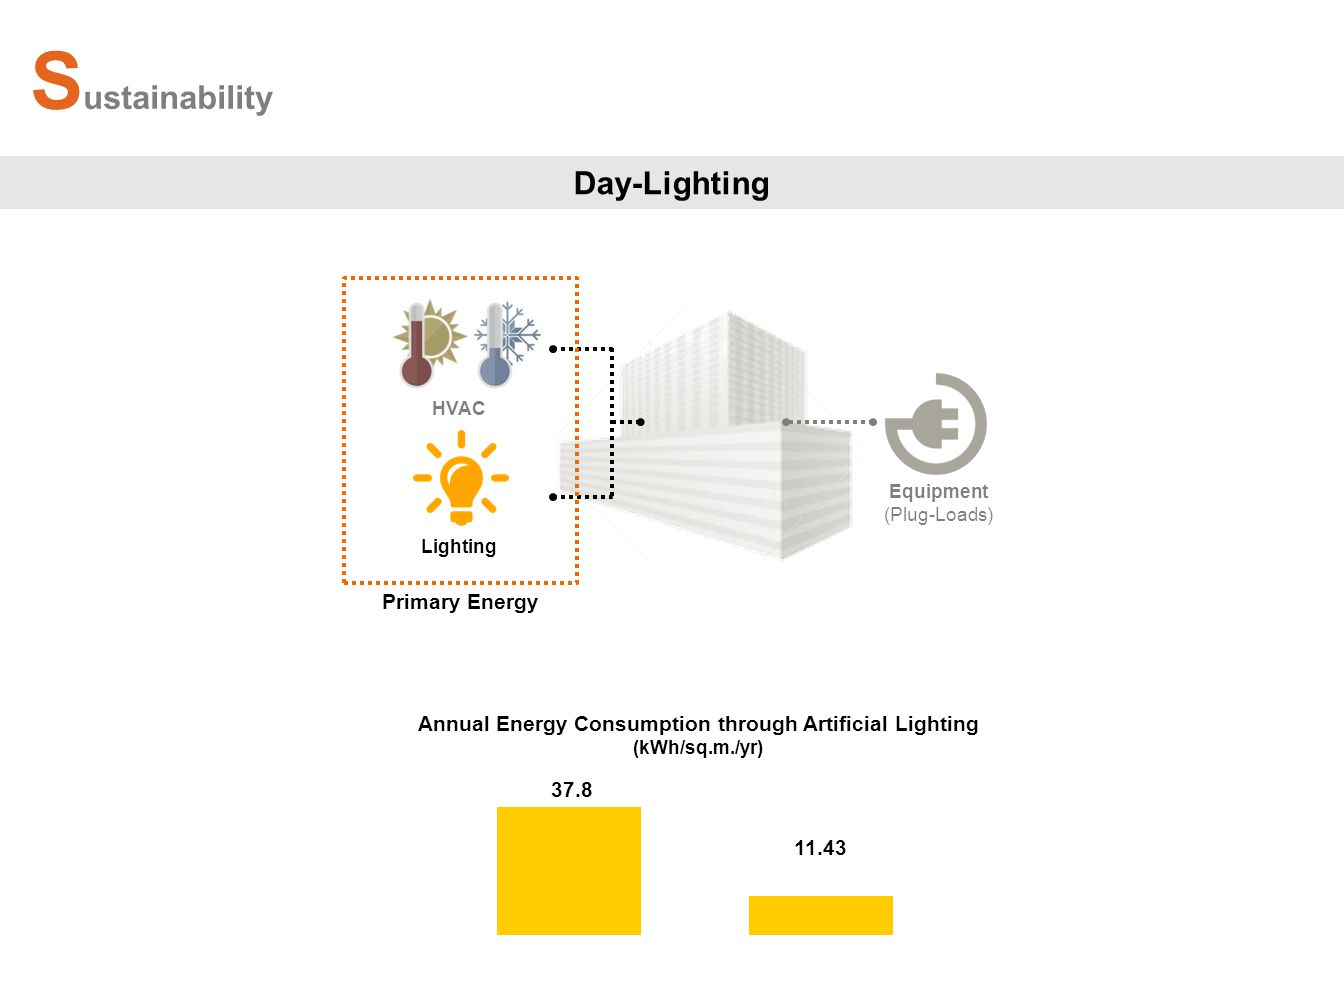 HVAC Equipment (Plug-Loads) Primary Energy Lighting 37.8 11.43 S ustainability Day-Lighting Annual Energy Consumption through Artificial Lighting (kWh/sq.m./yr)